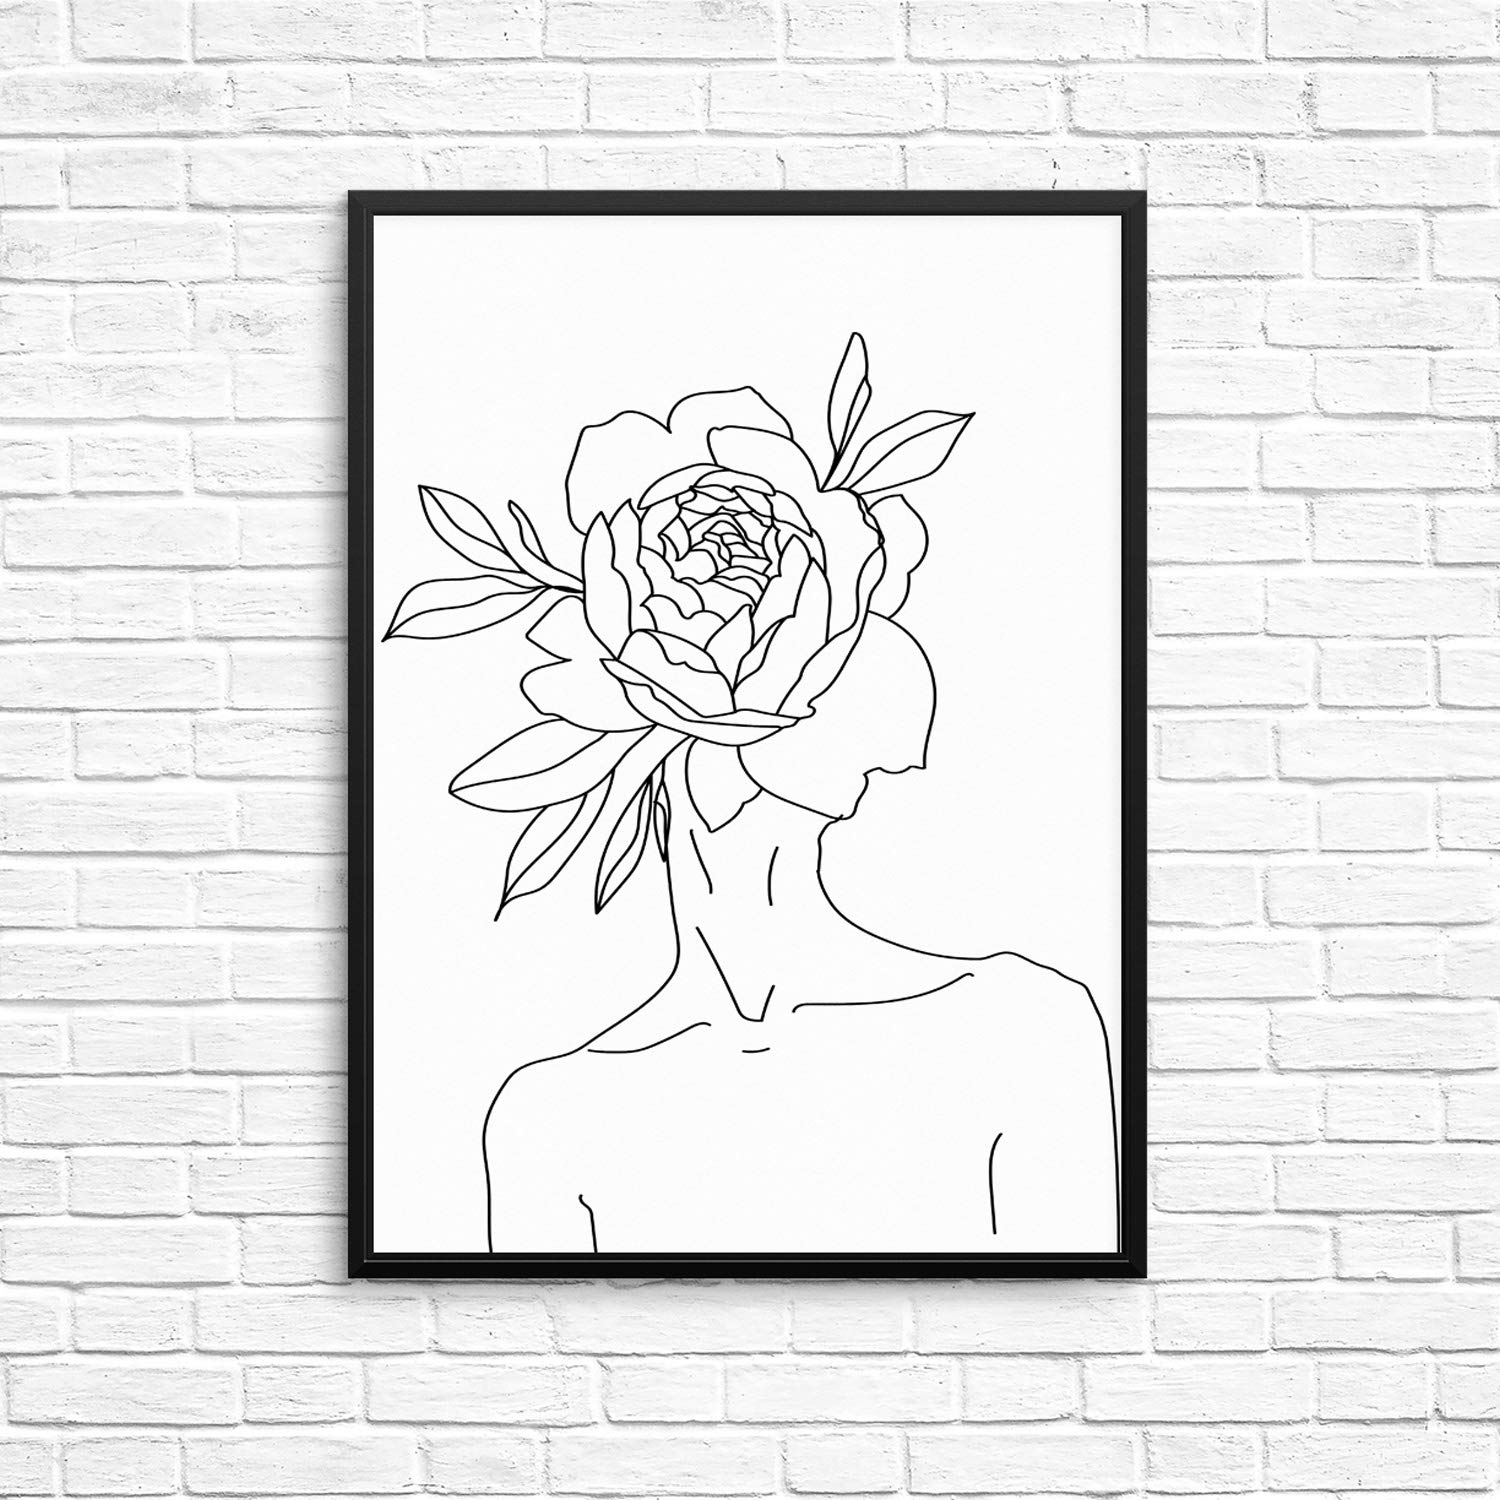 Womans body shape silhouette wall decor art print poster 11x14 unframed minimalist black and white artwork for living room bedroom or home office